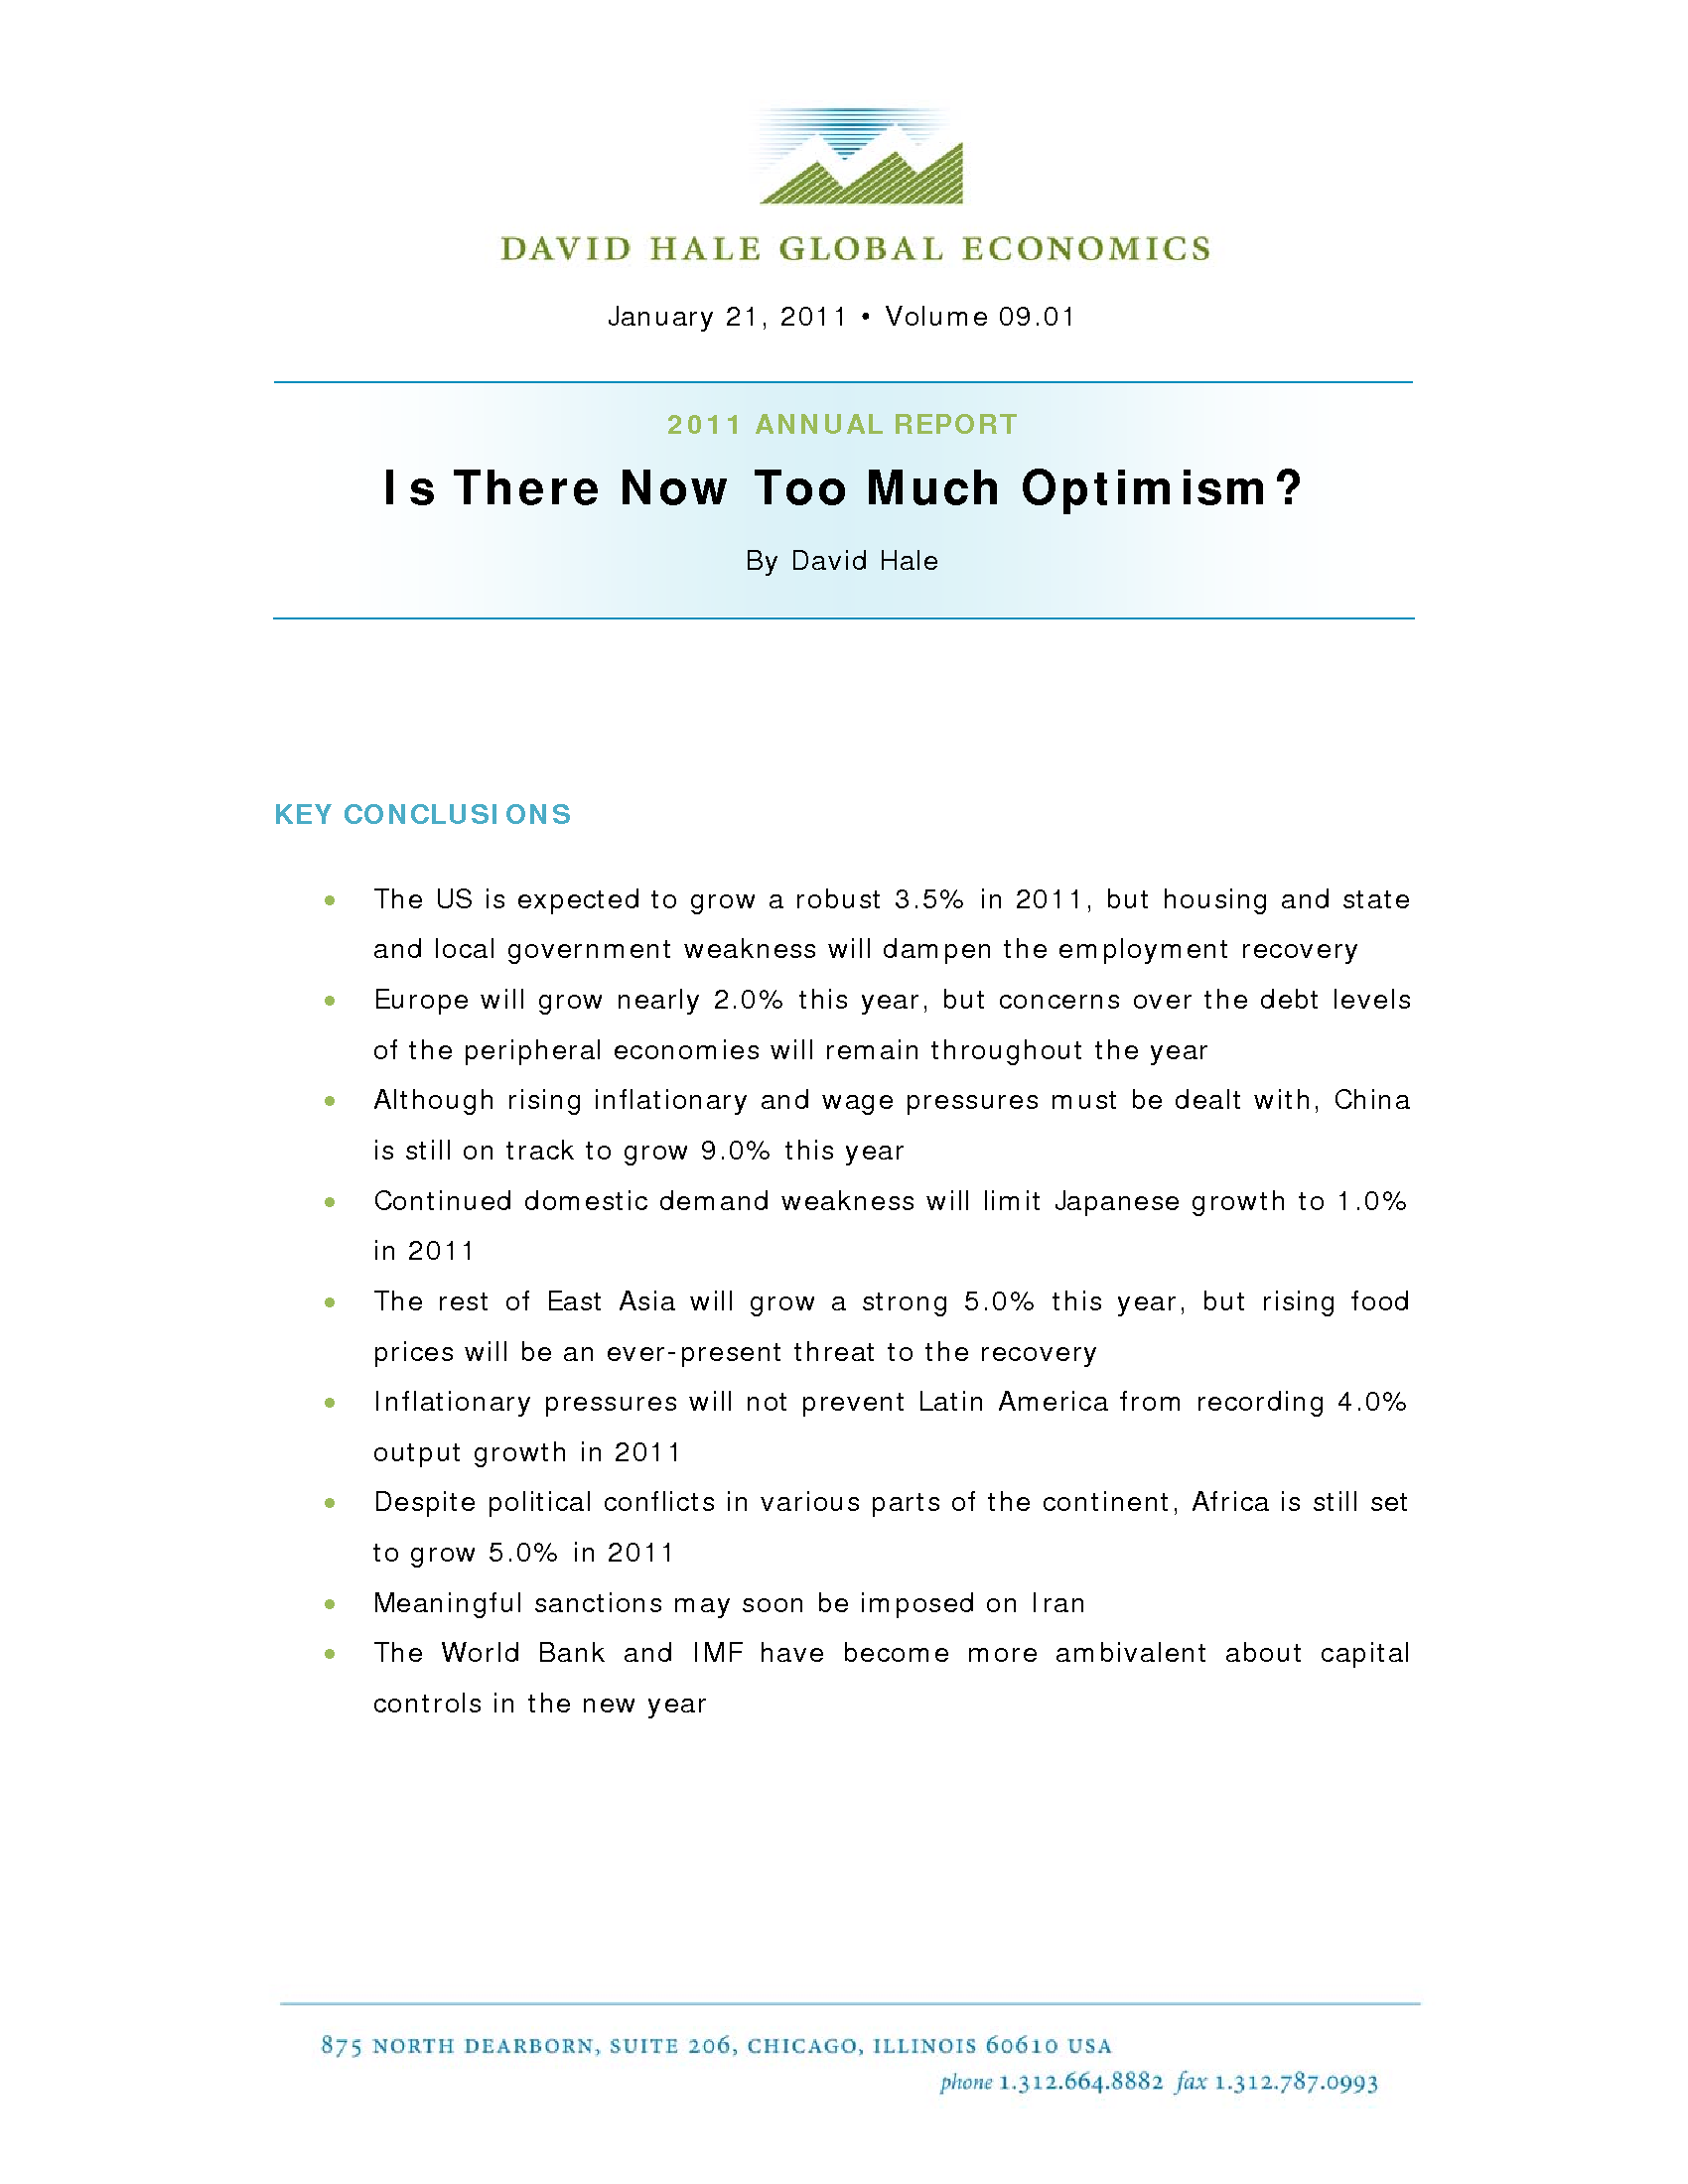 2011 Annual Report-Is There Now Too Much Optimism.pdf- Thumb